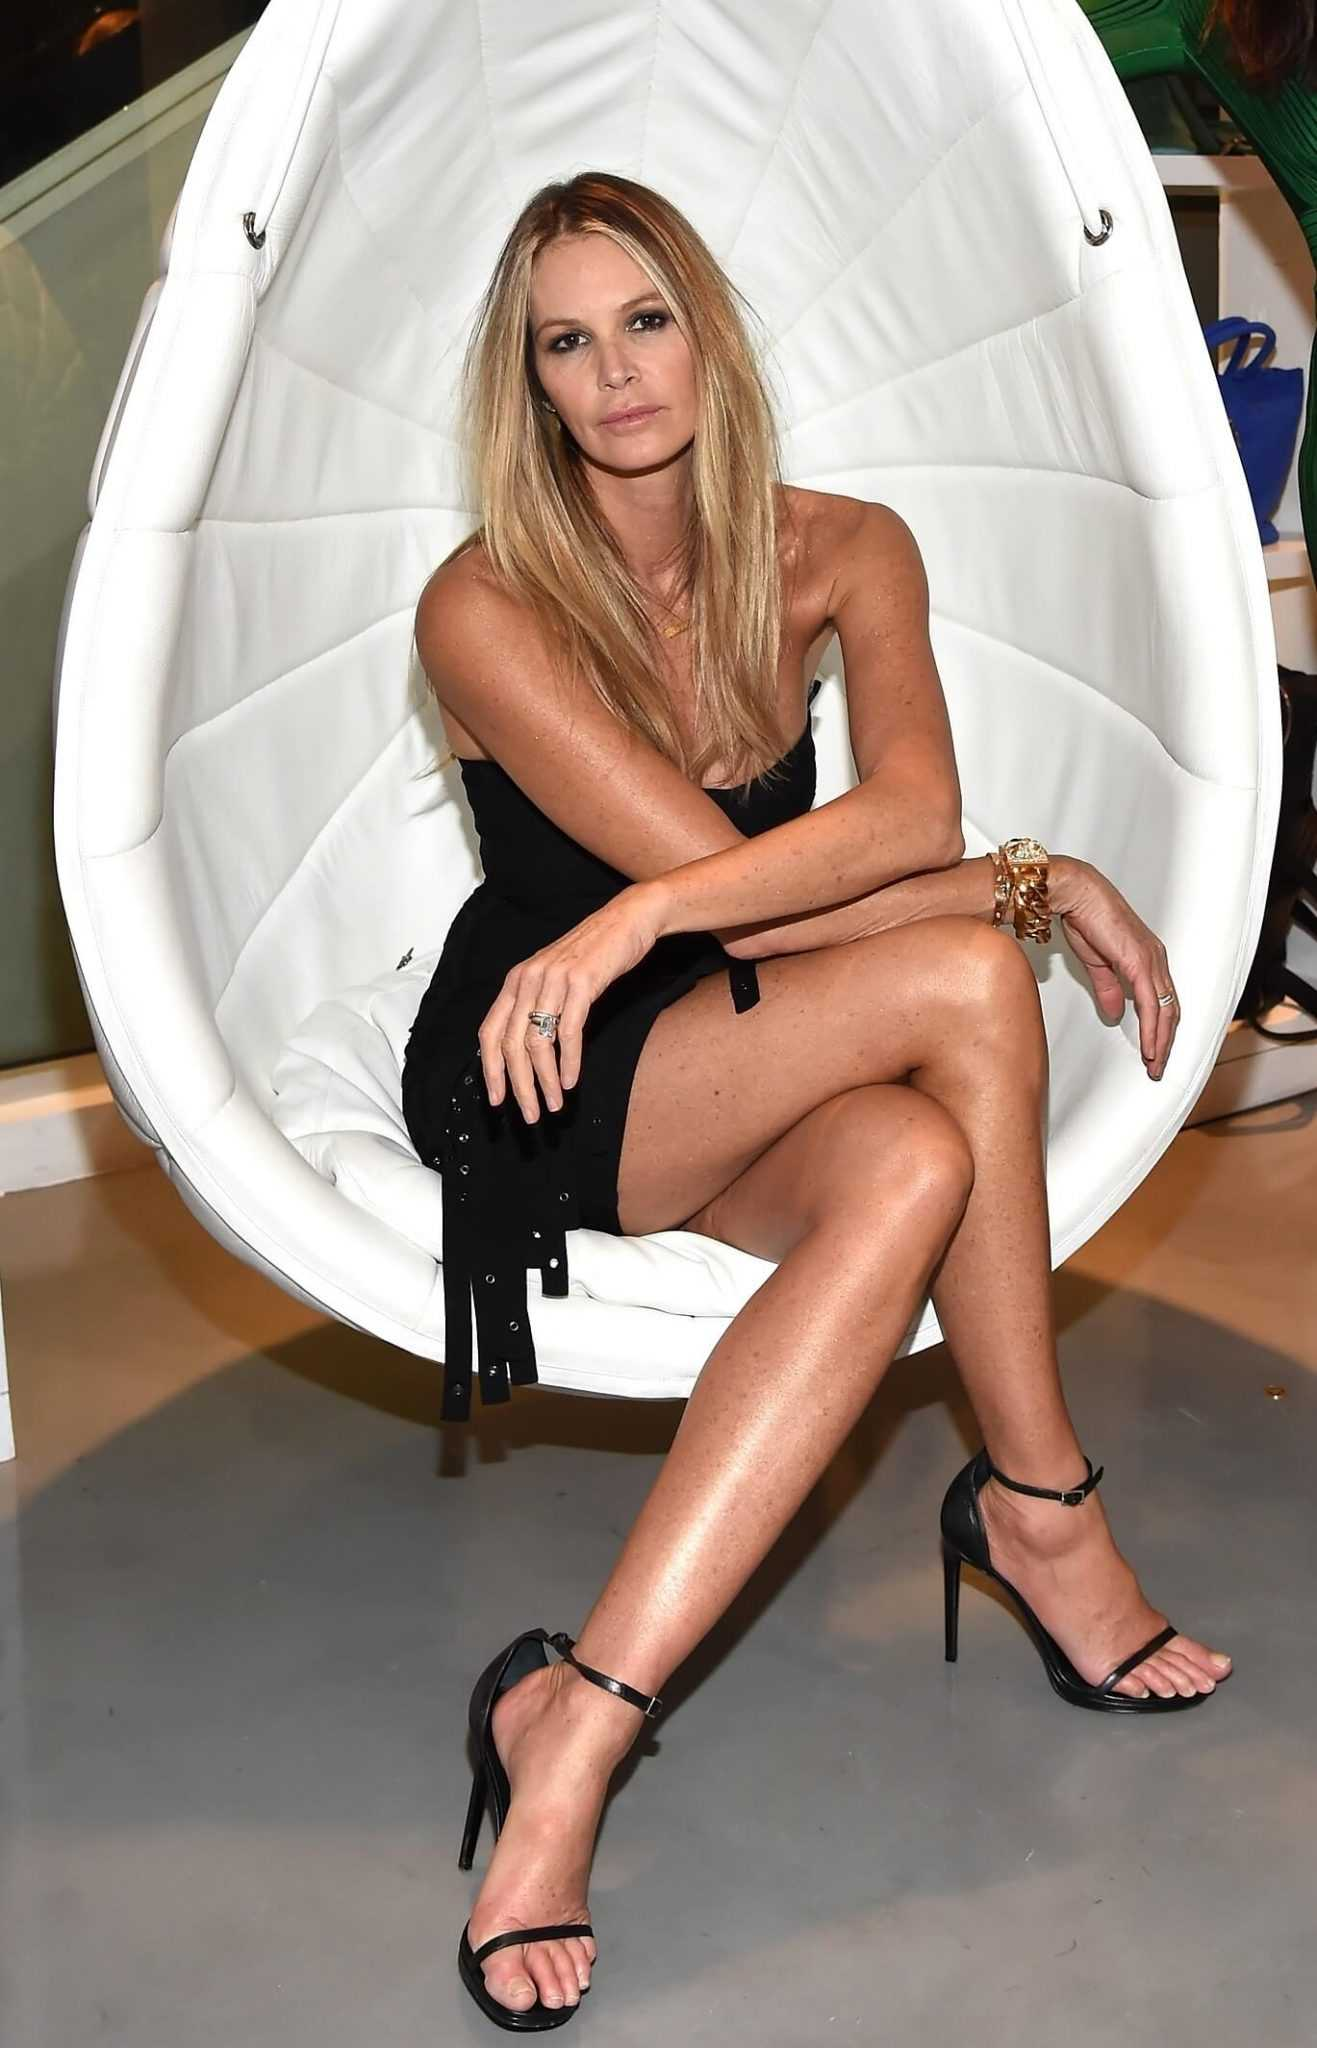 51 Nude Pictures Of Elle Macpherson That Will Make Your